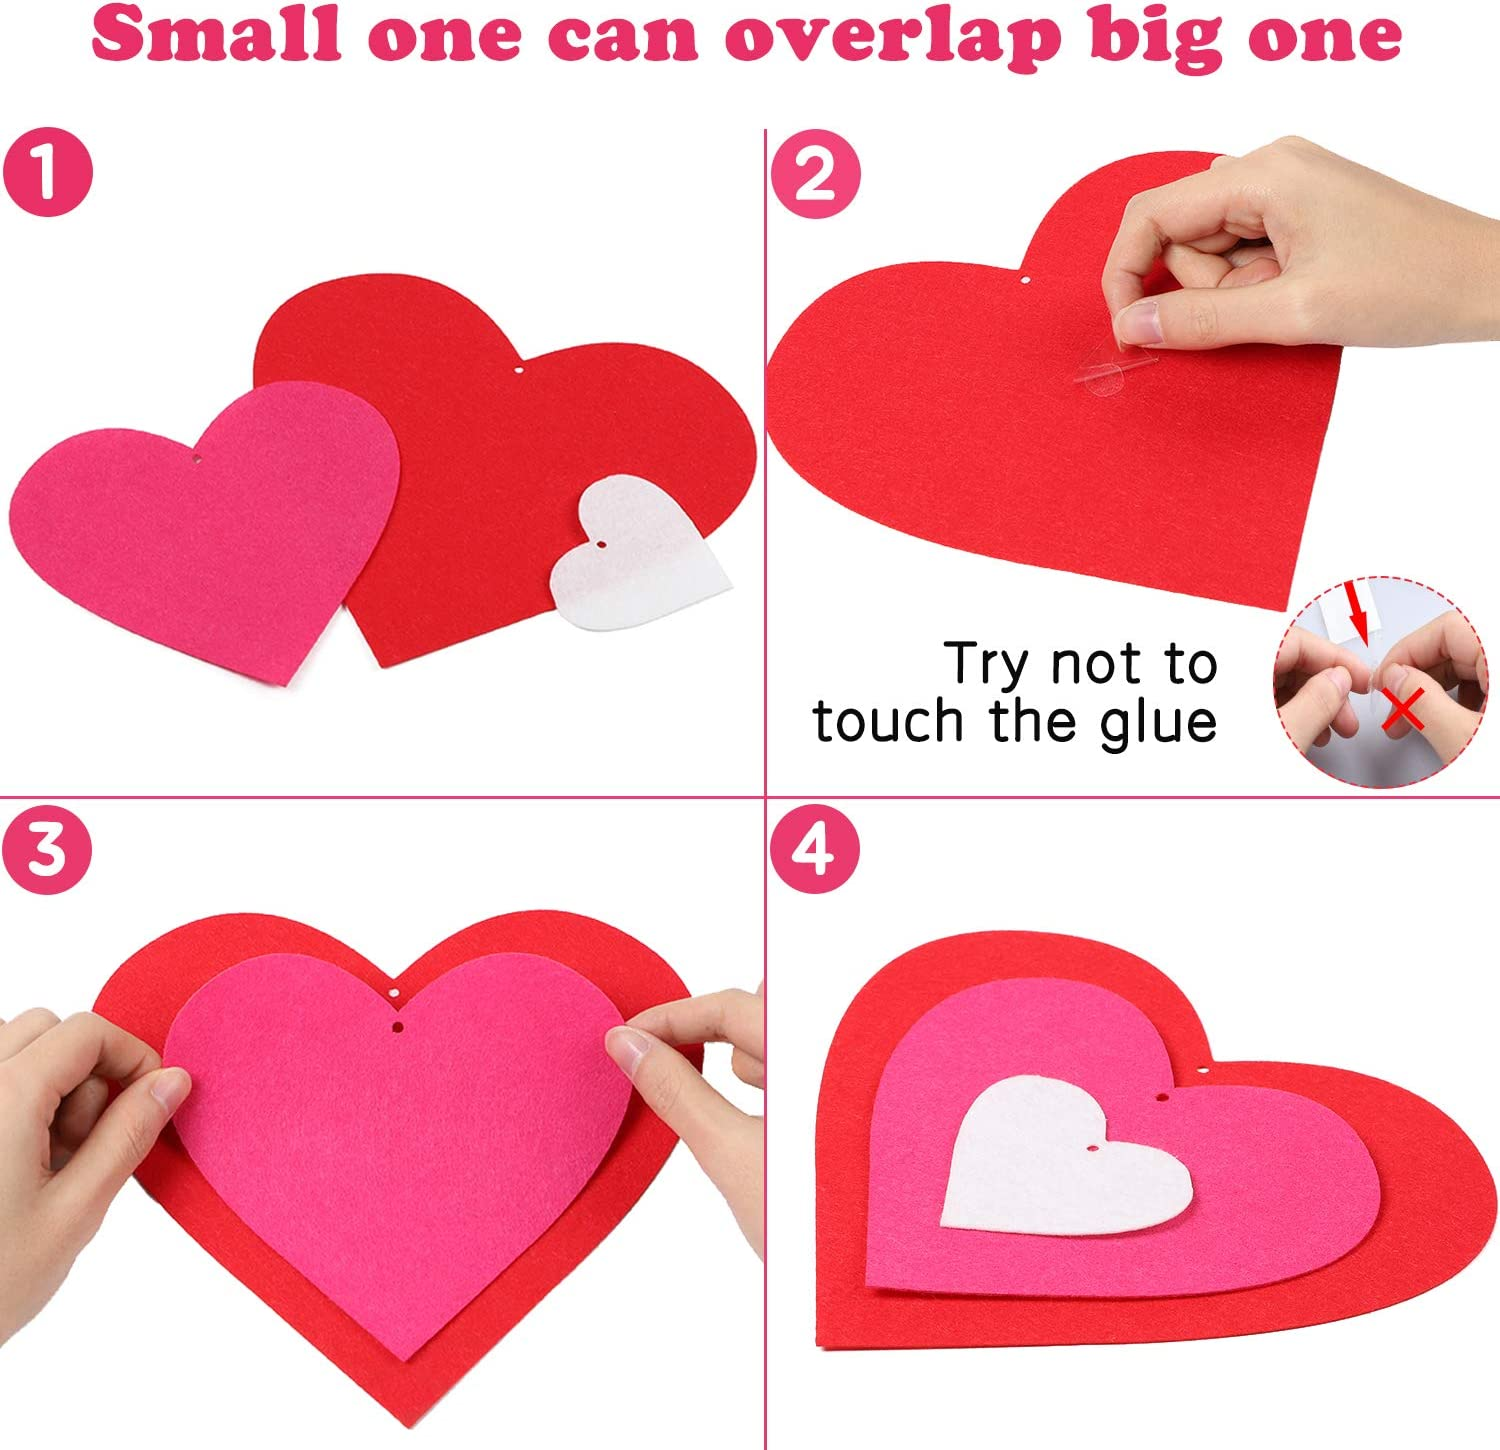 Ticiaga 60pcs Felt Red Heart Cut-outs for Valentines Day Decor Valentine Wedding Anniversary Birthday Party Supply Cake Topper Swirl Ceiling Decor Pink Heart Table Topper Red Heart Garland Banner